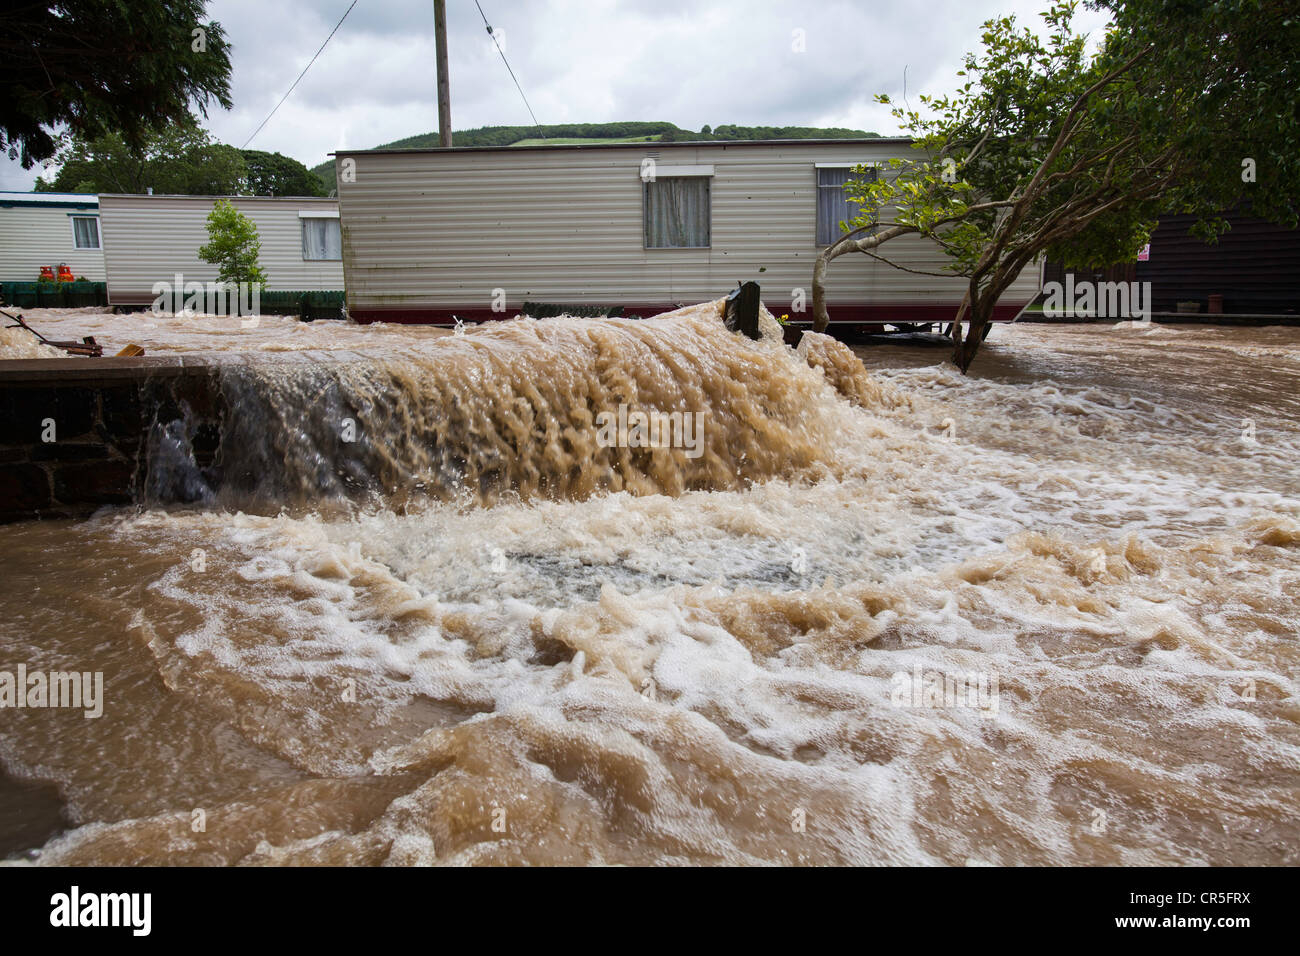 Floodwater flowing through a campsite near Aberystwyth, Wales, UK - Stock Image